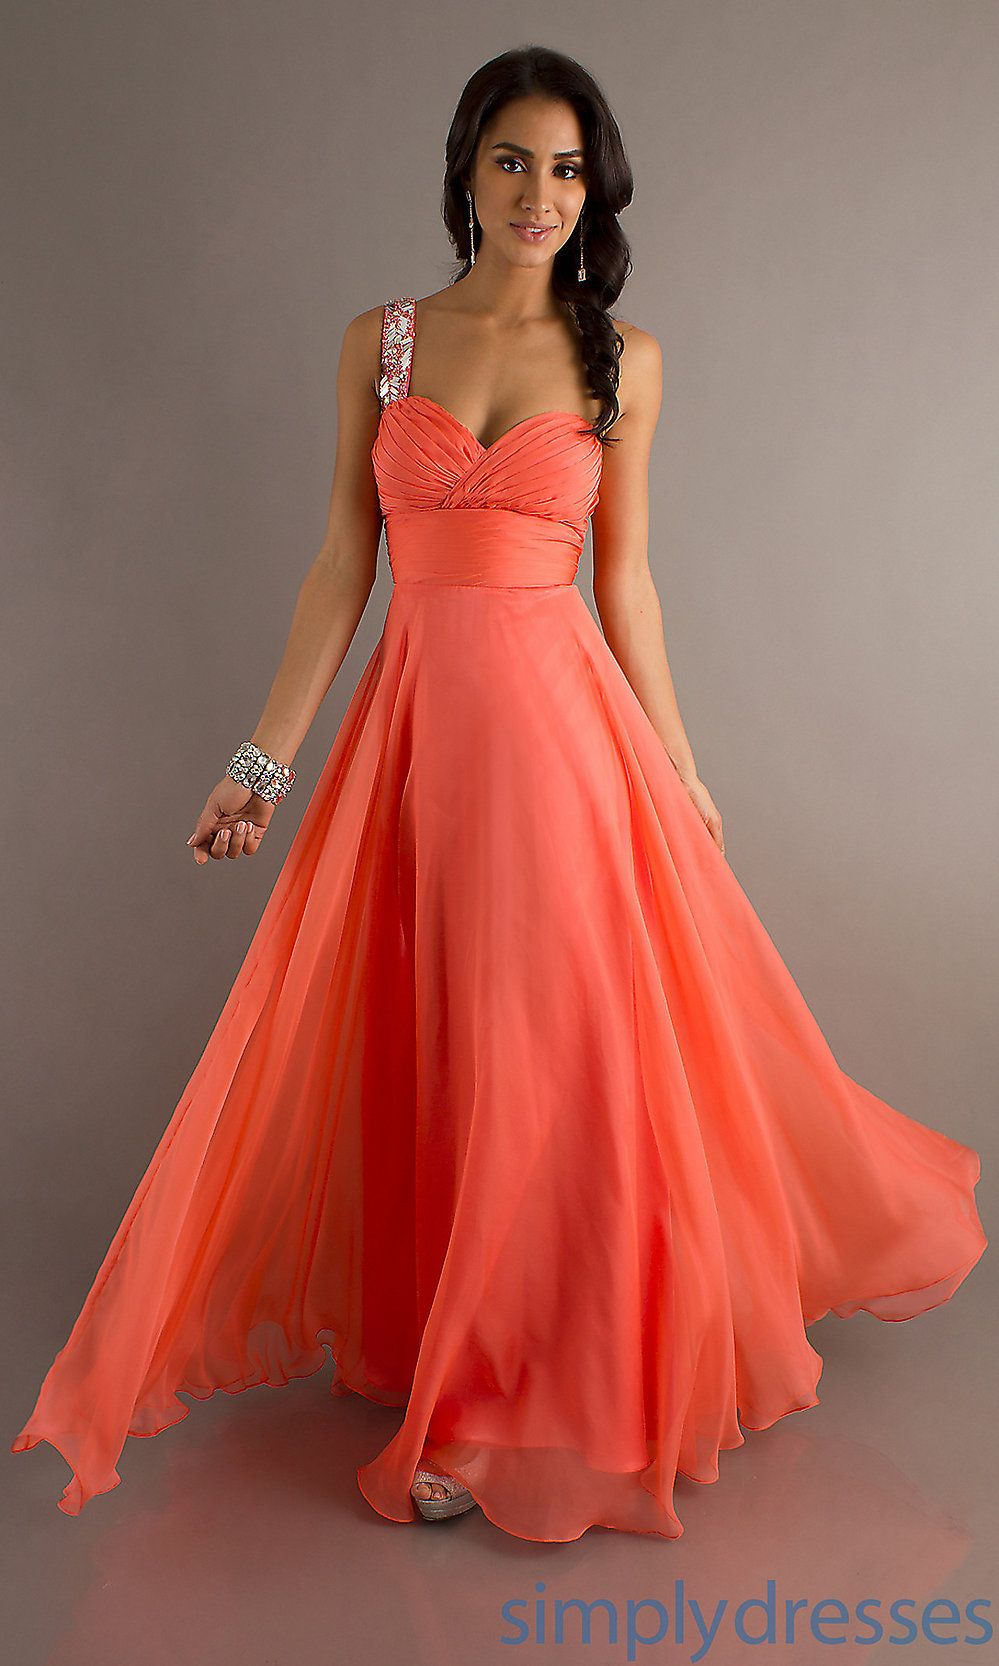 If this had no bling on the straps and was short would be cute